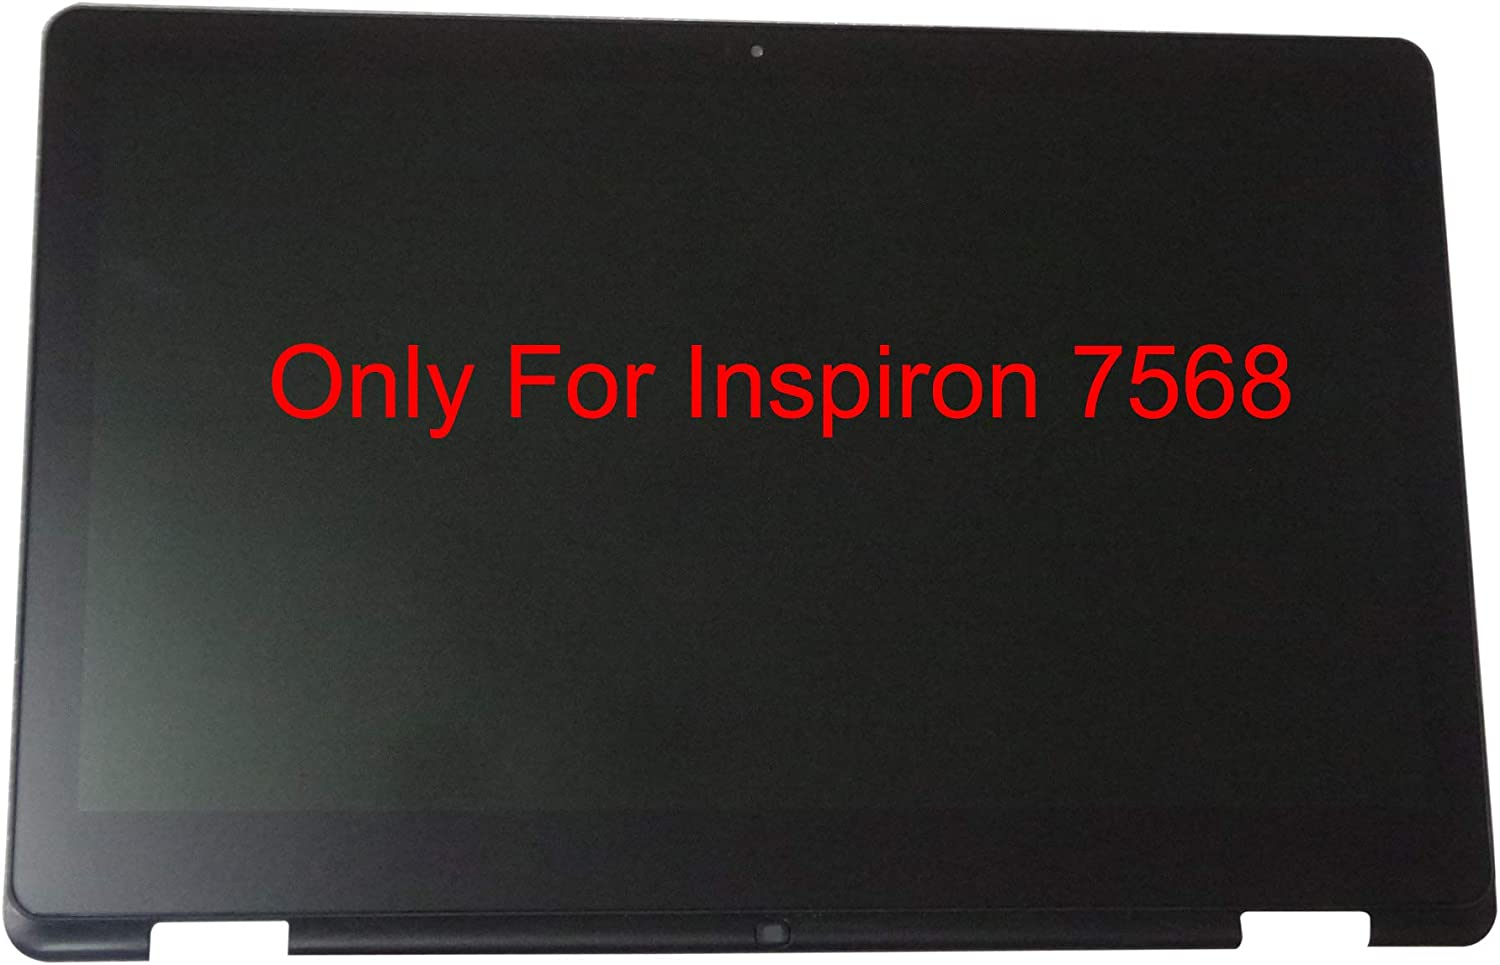 15.6 Touch Screen Replacement Digitizer Glass LCD LED Display 30 Pin FHD 1920x1080 YouTube Instructions Available Bezel for Dell Inspiron 15-7568